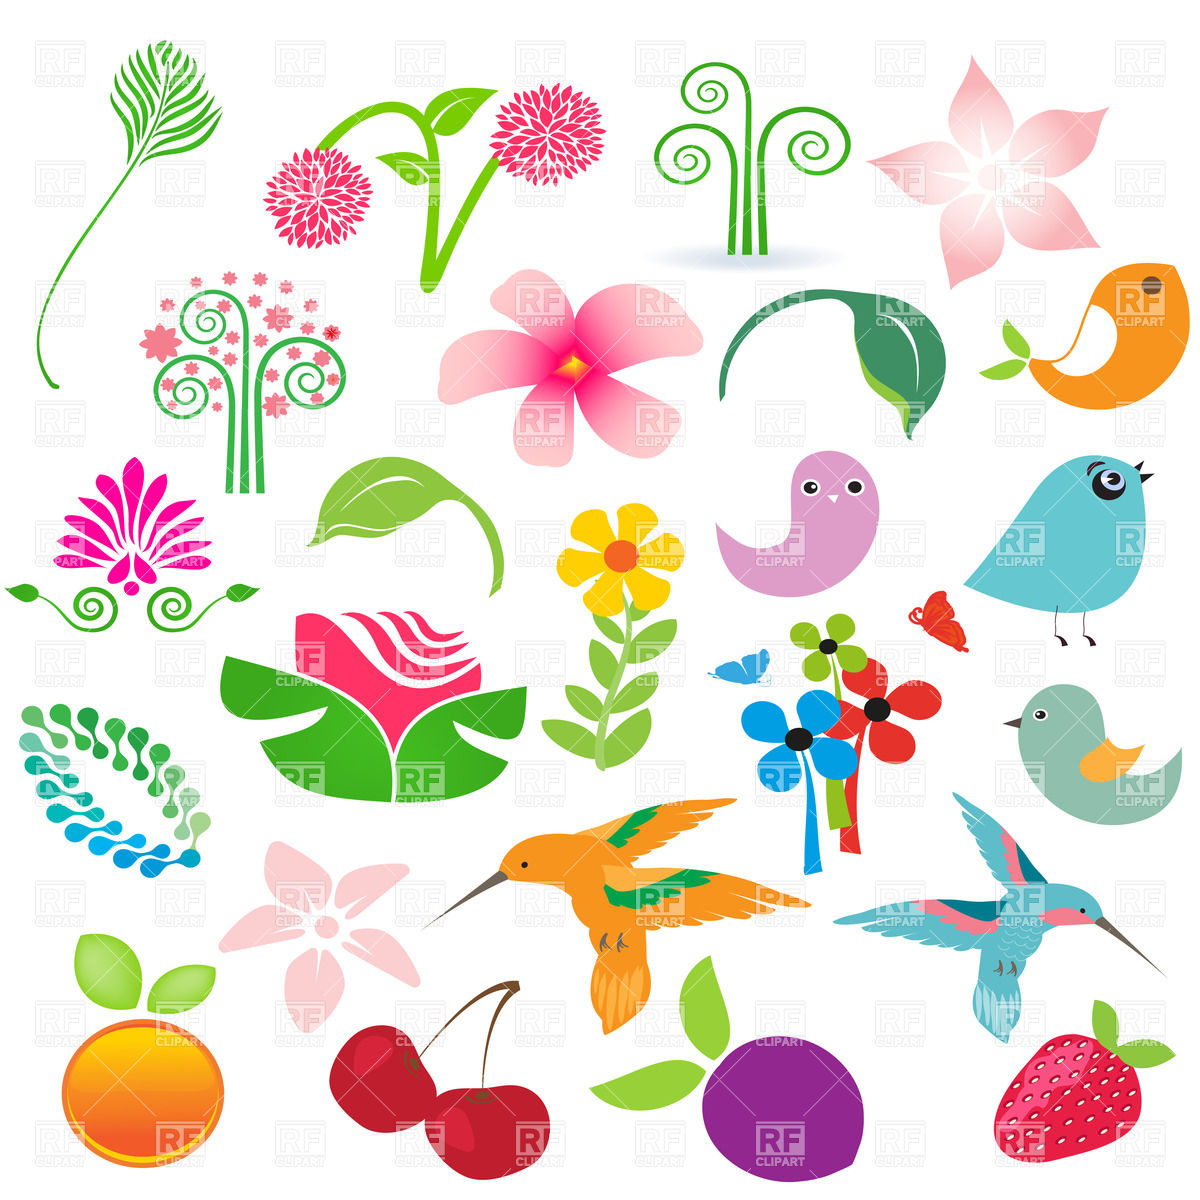 Flower nature clipart - Clipground